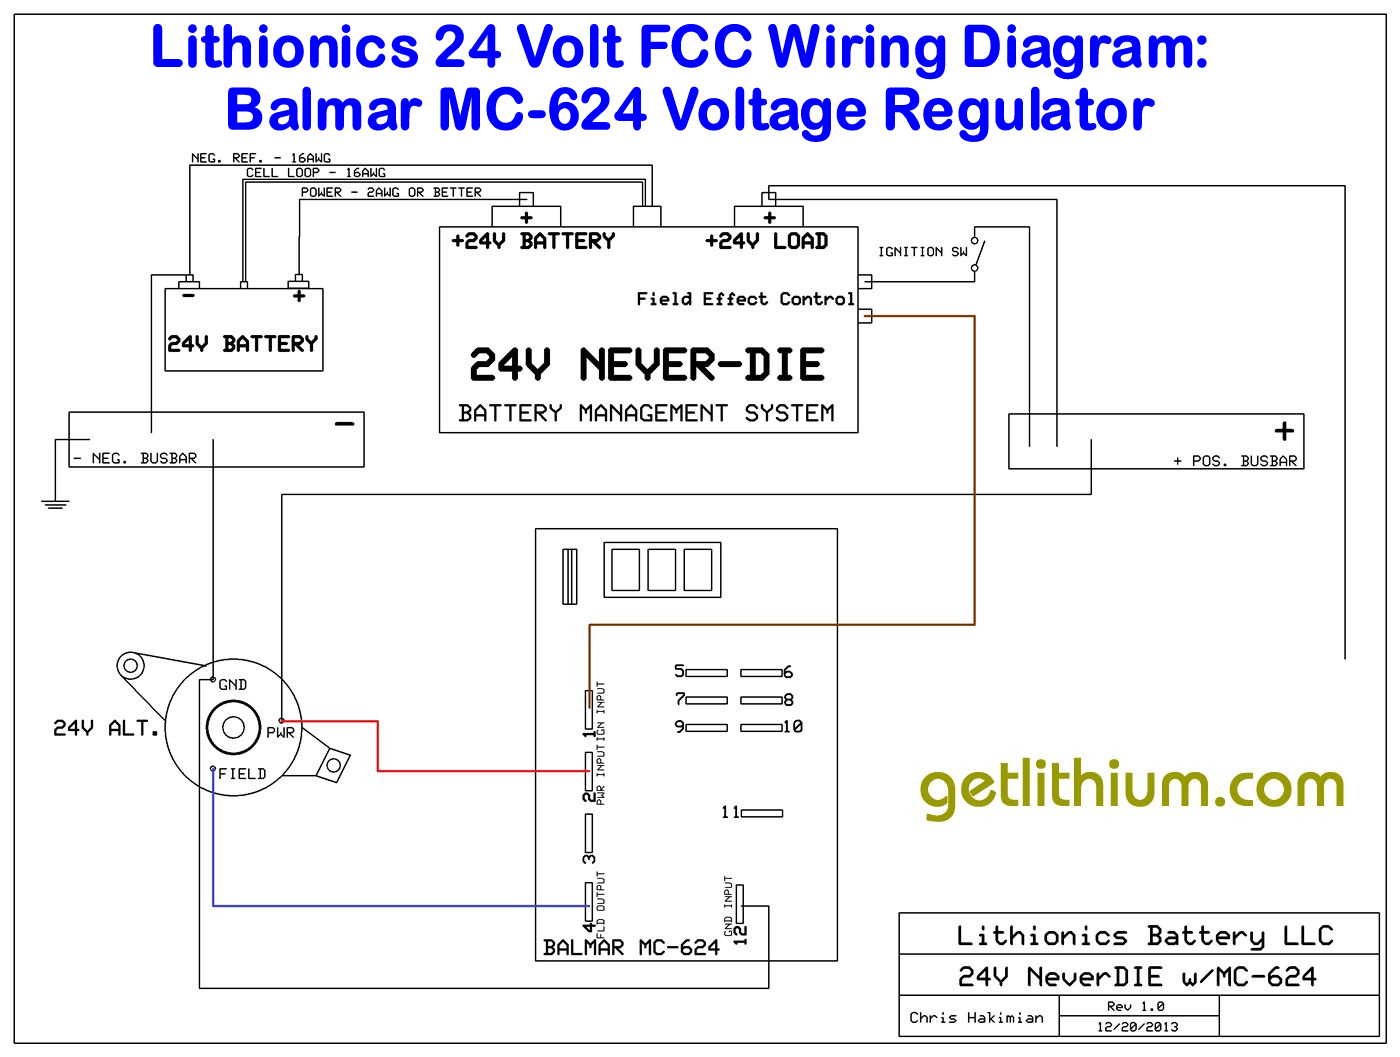 Lithionics Neverdie Battery Management Systems Superior Lithium 72 Volt Wiring Diagram Click On The Image For A Larger Fcc Of Balmar Mc 624